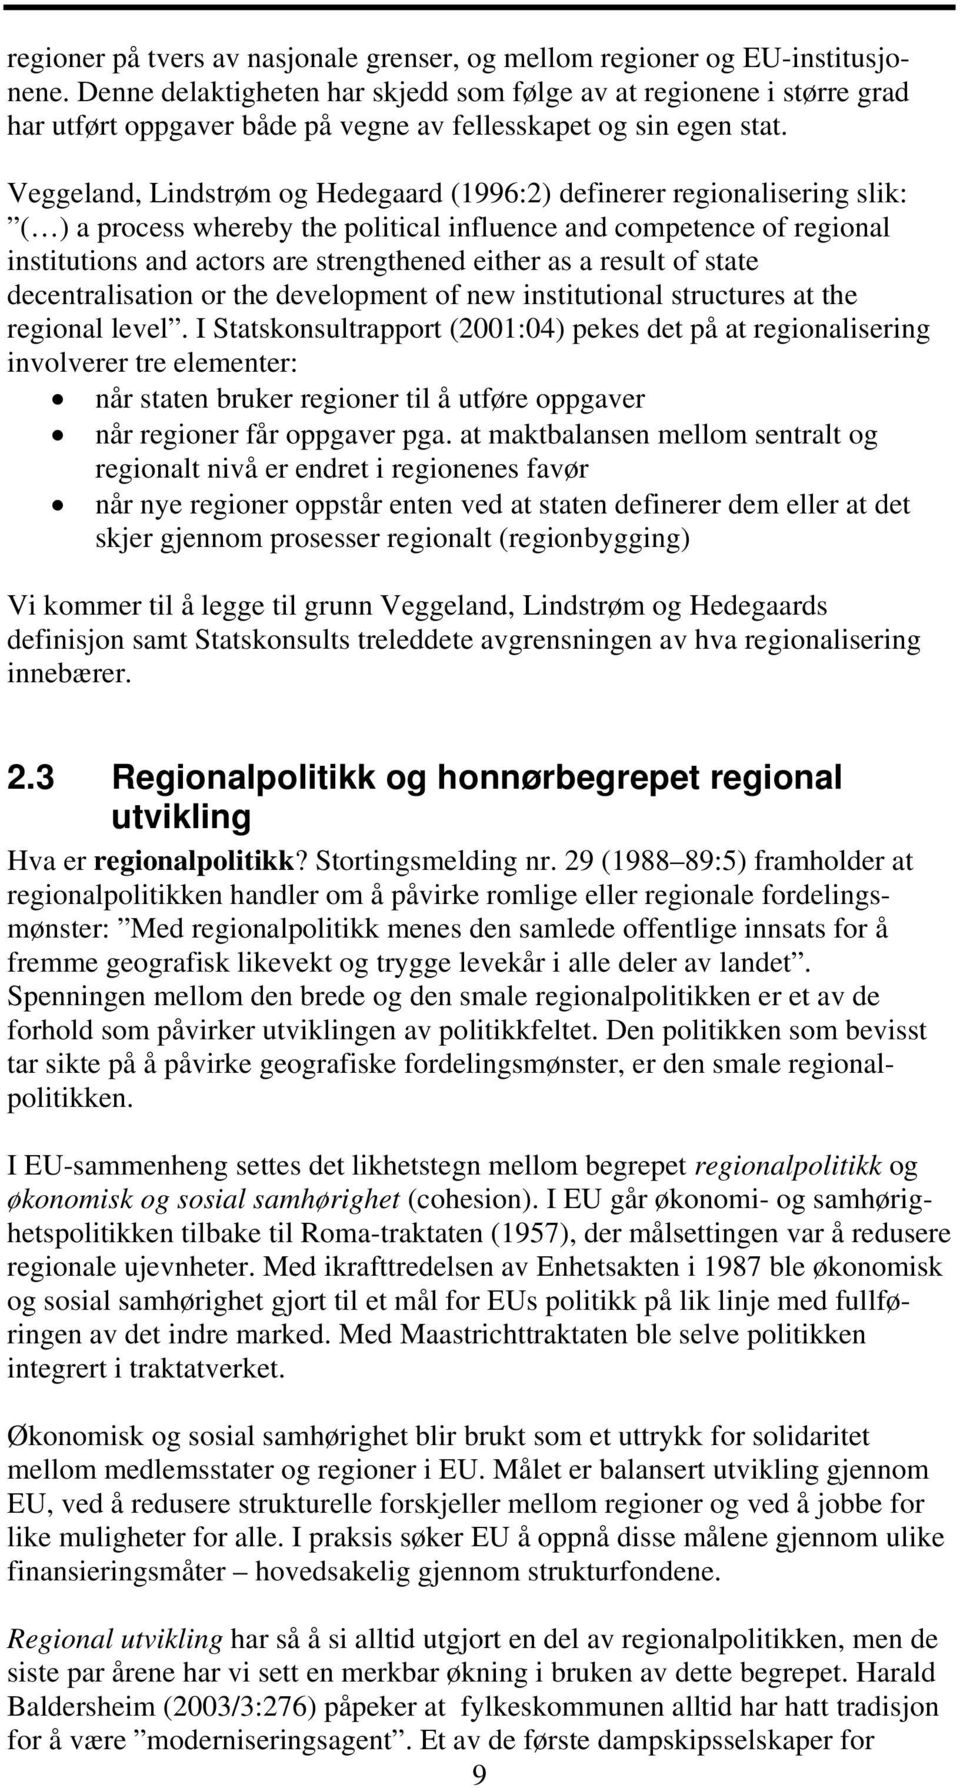 Veggeland, Lindstrøm og Hedegaard (1996:2) definerer regionalisering slik: ( ) a process whereby the political influence and competence of regional institutions and actors are strengthened either as